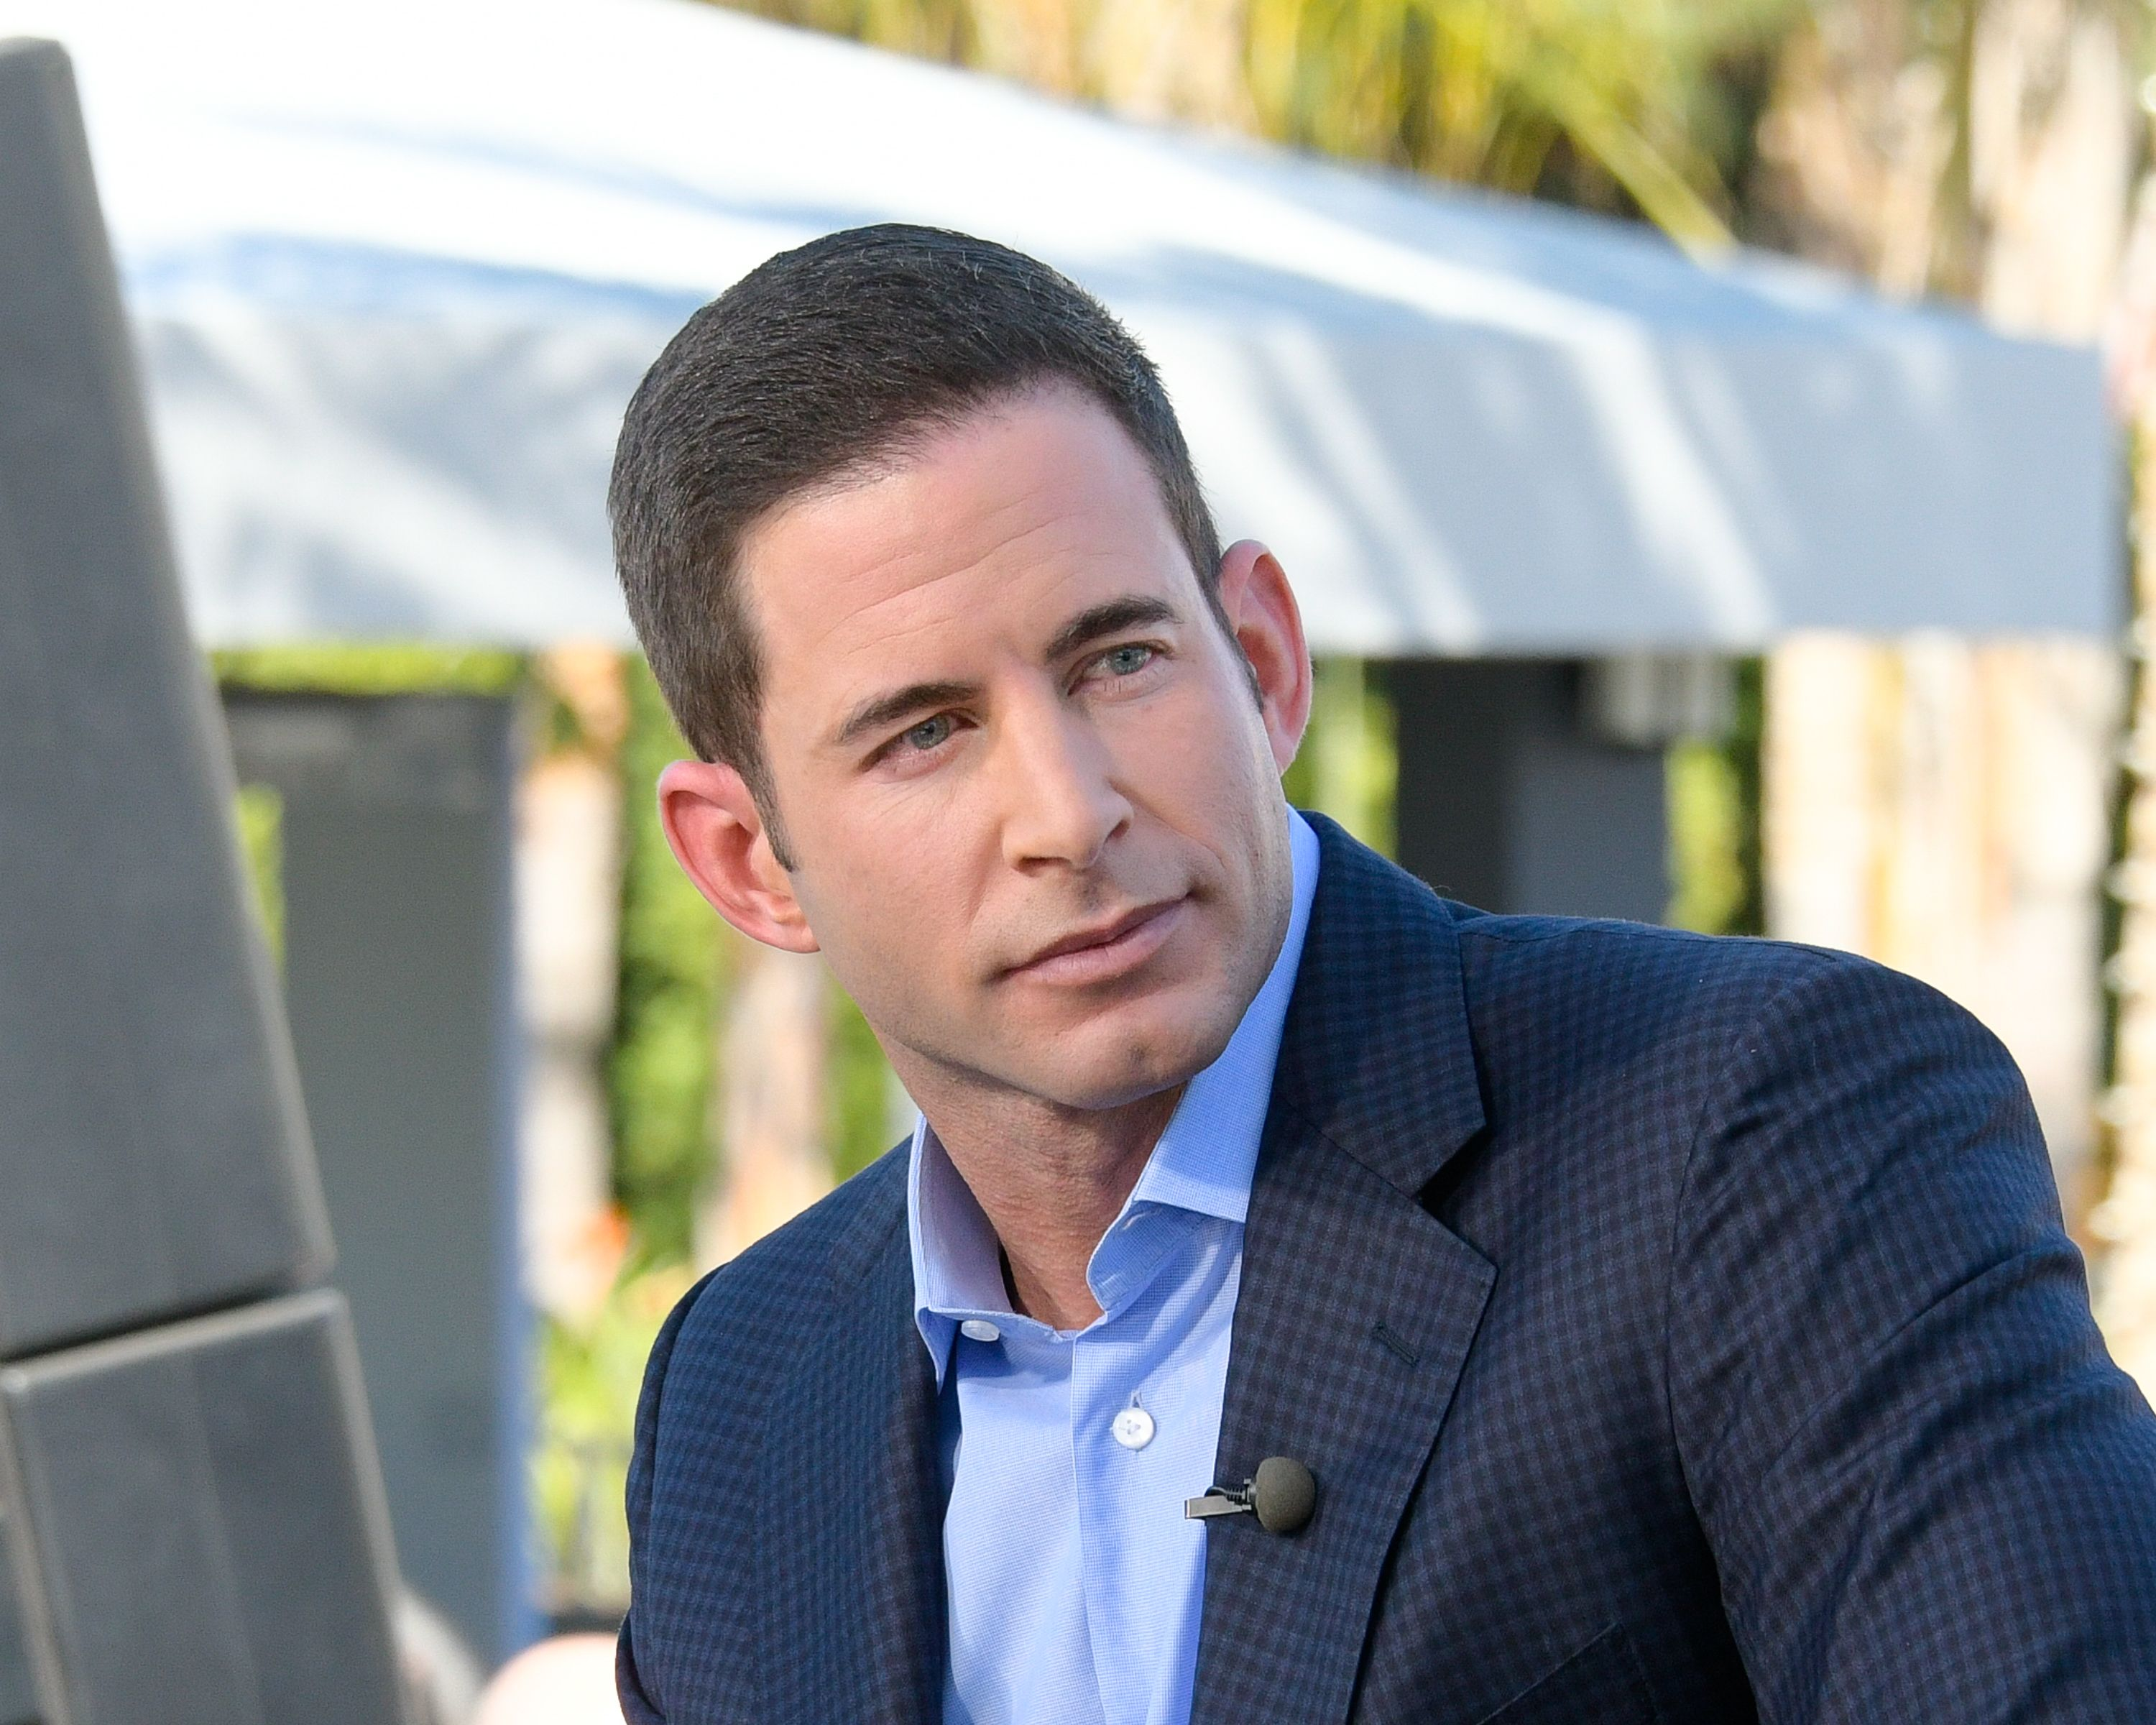 Tarek El Moussa Reveals How Battling Cancer and Getting Divorced Changed Him for the Better